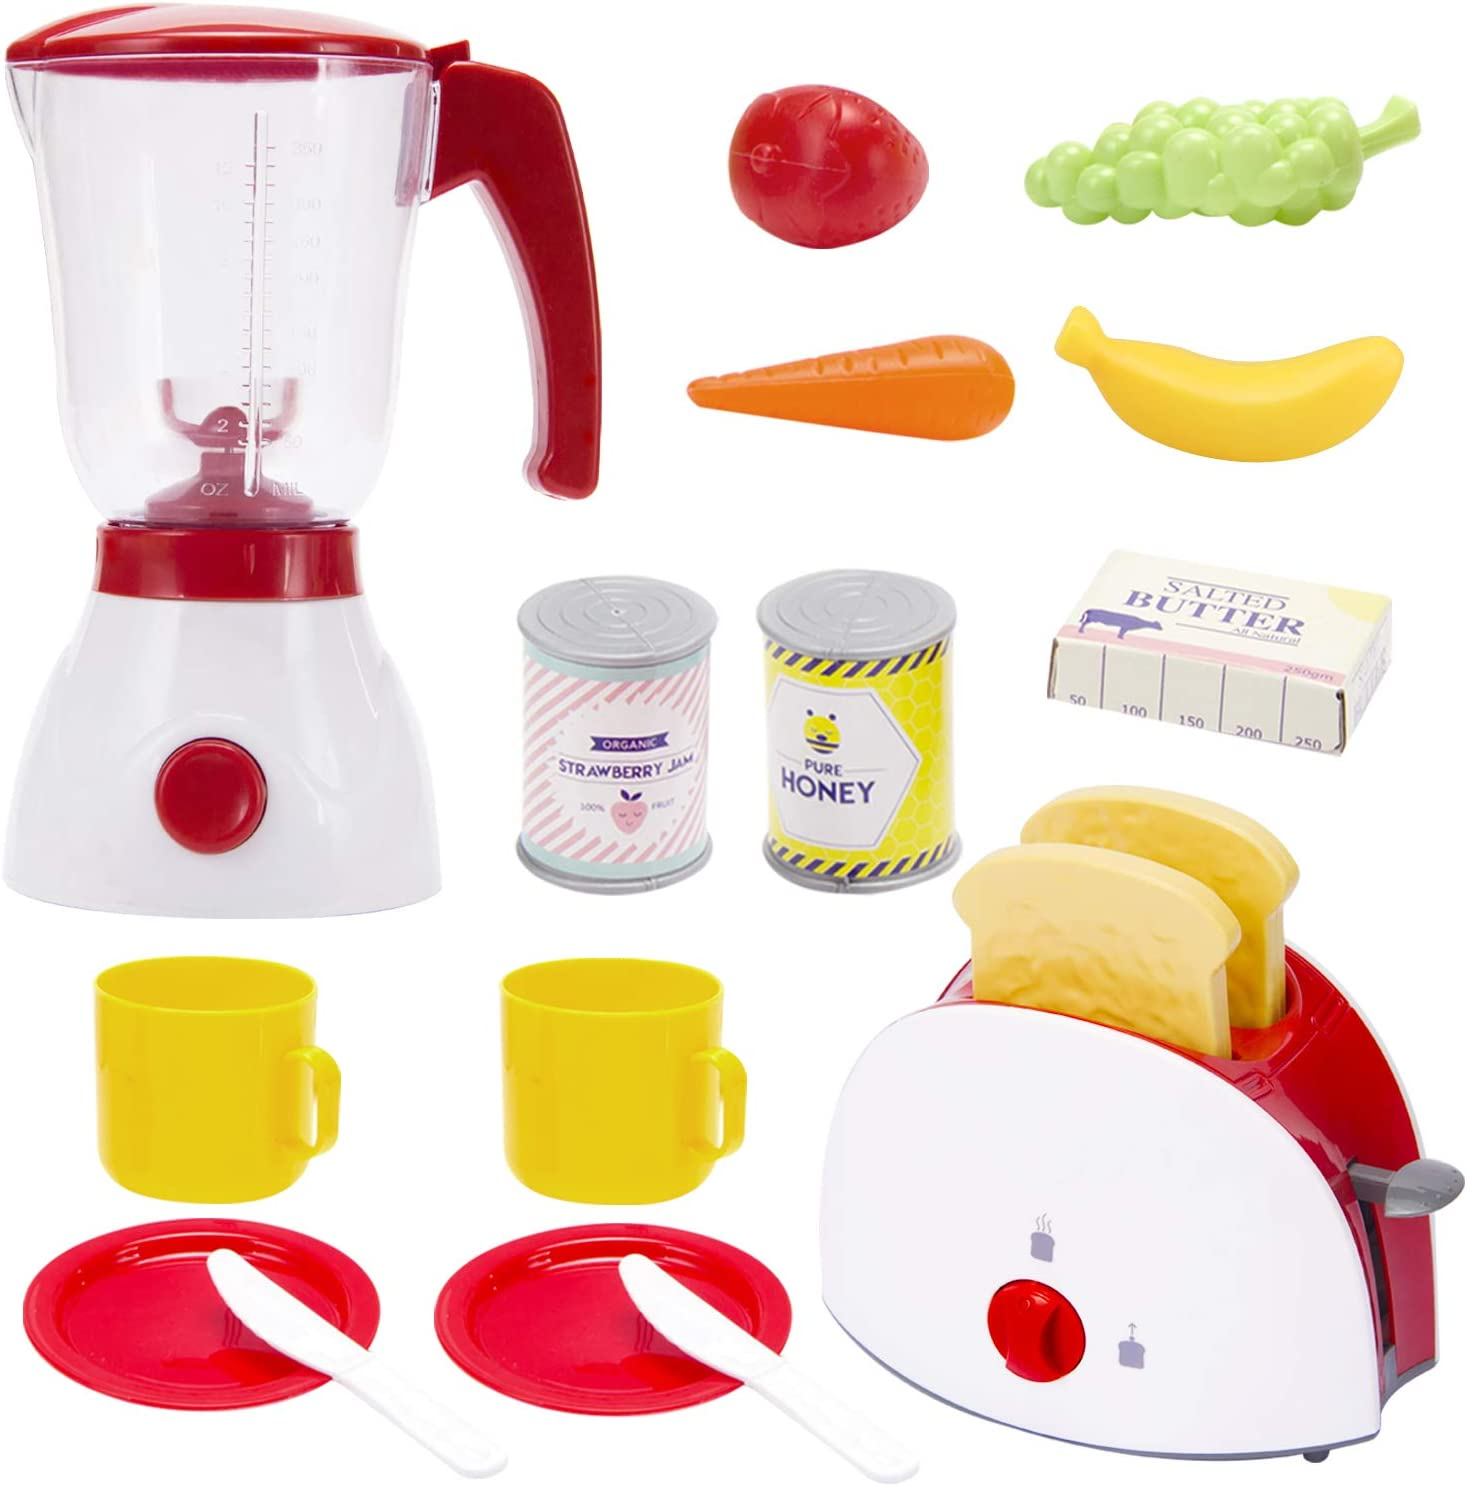 TOY Life Toy Blender and Toy Toaster with Pretend Play Kitchen Accessories for Toddlers Set | Cooking Toy Kitchen Appliances Set Includes Bonus Plates Utensils and Play Food for Kids